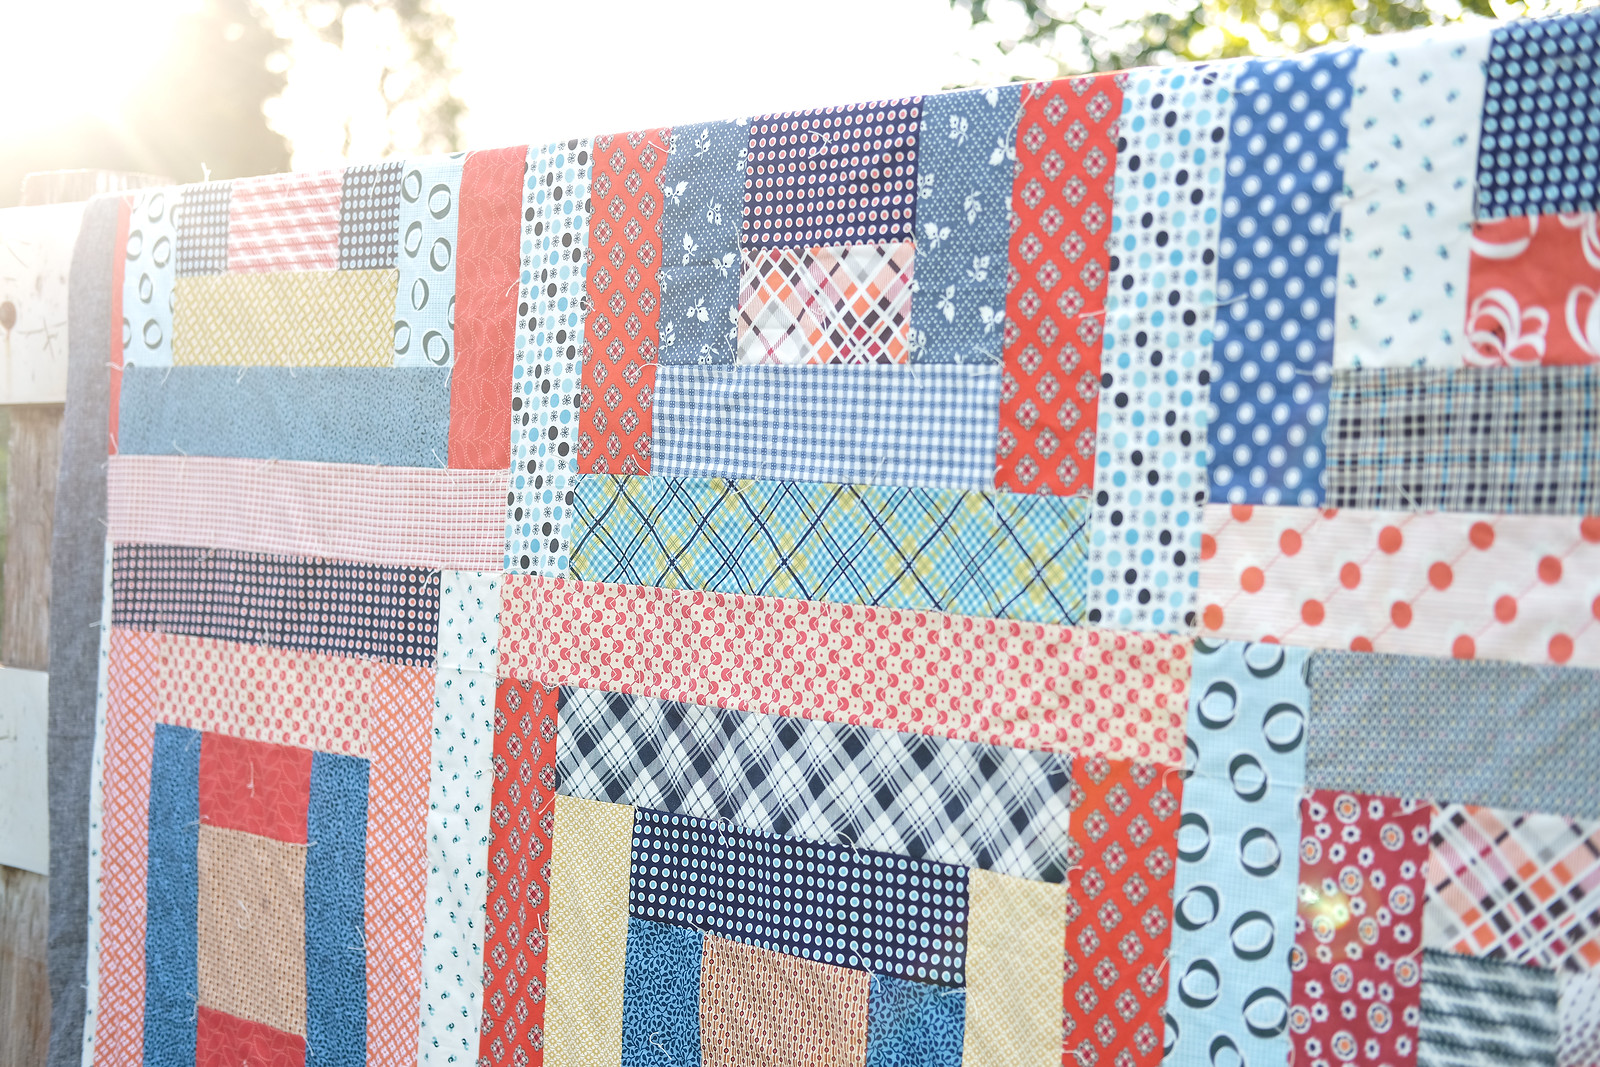 May Giant Block Picnic Quilt made with Denise Schmidt Fabrics - Kitchen Table Quilting